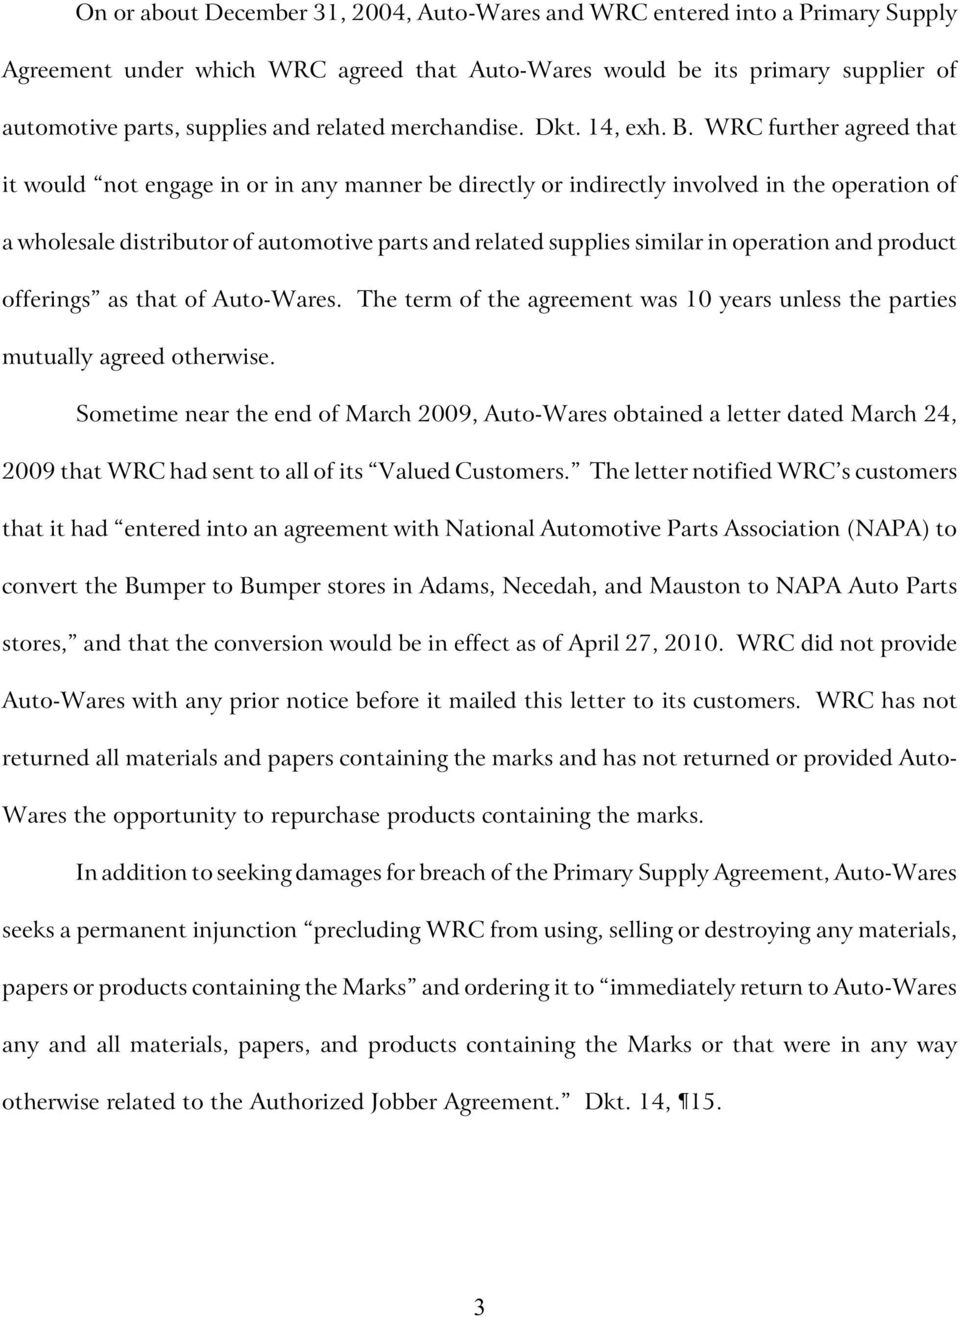 WRC further agreed that it would not engage in or in any manner be directly or indirectly involved in the operation of a wholesale distributor of automotive parts and related supplies similar in